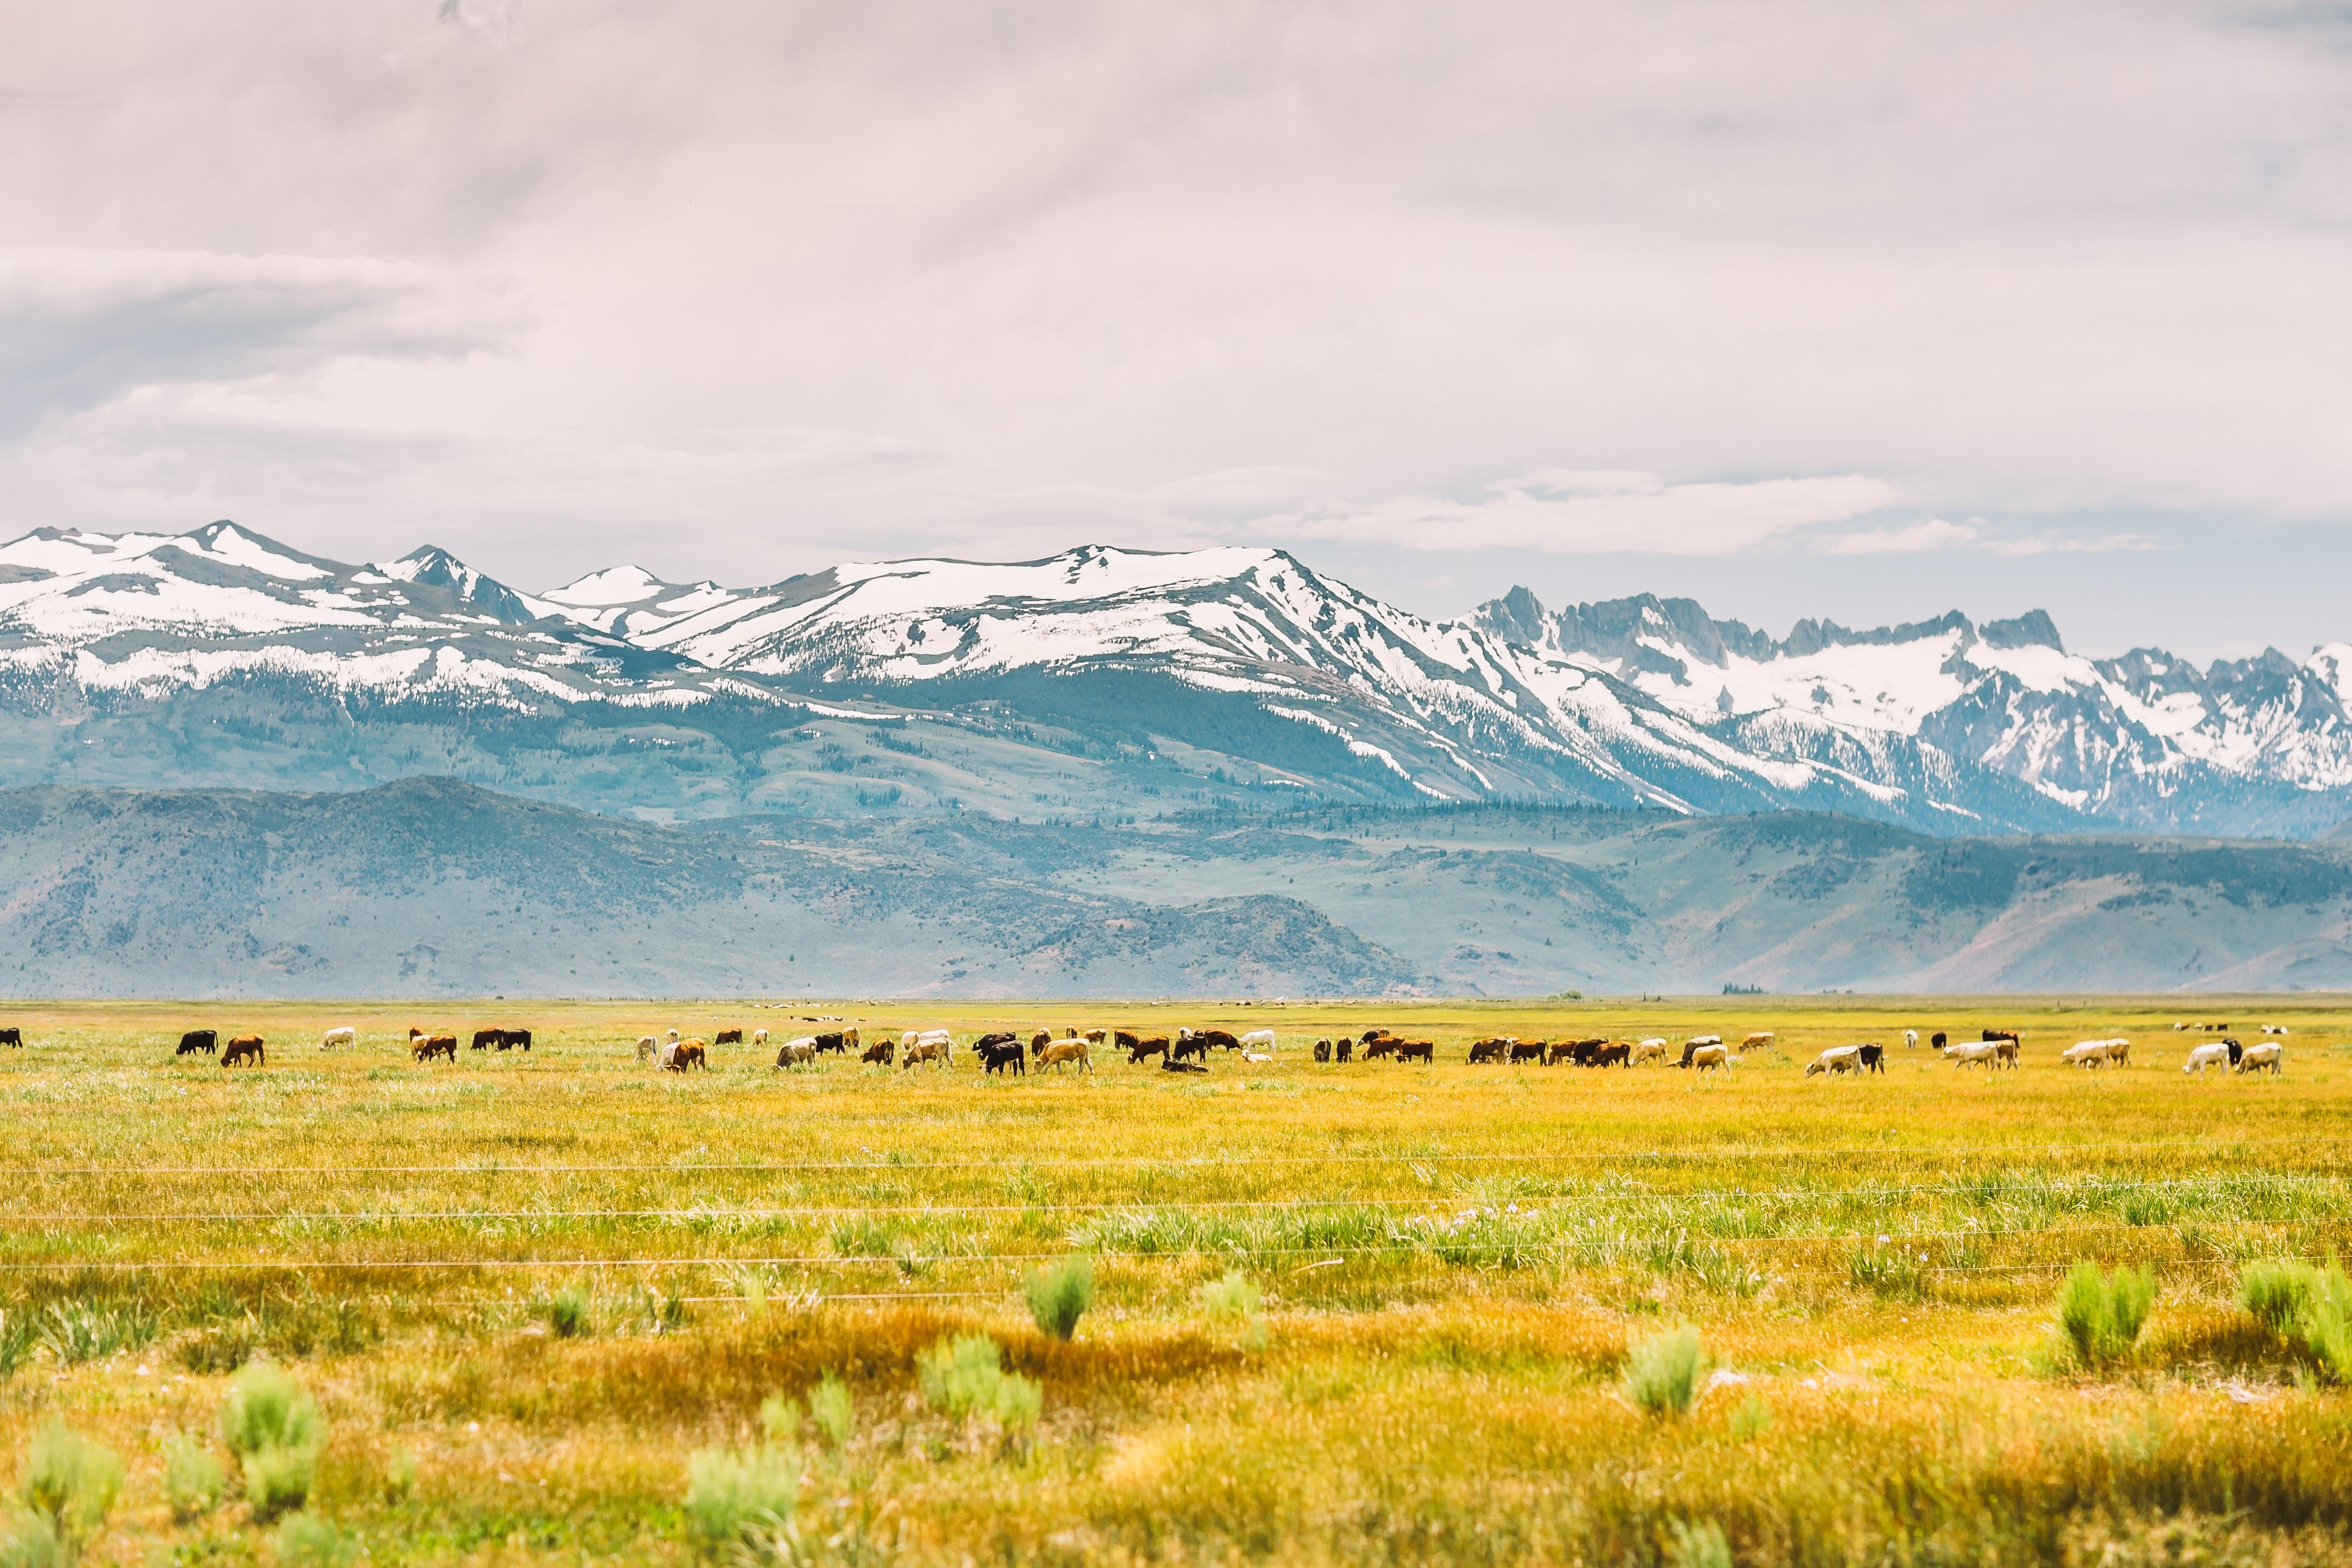 Cattle crossing a field with snow covered mountains in the background.